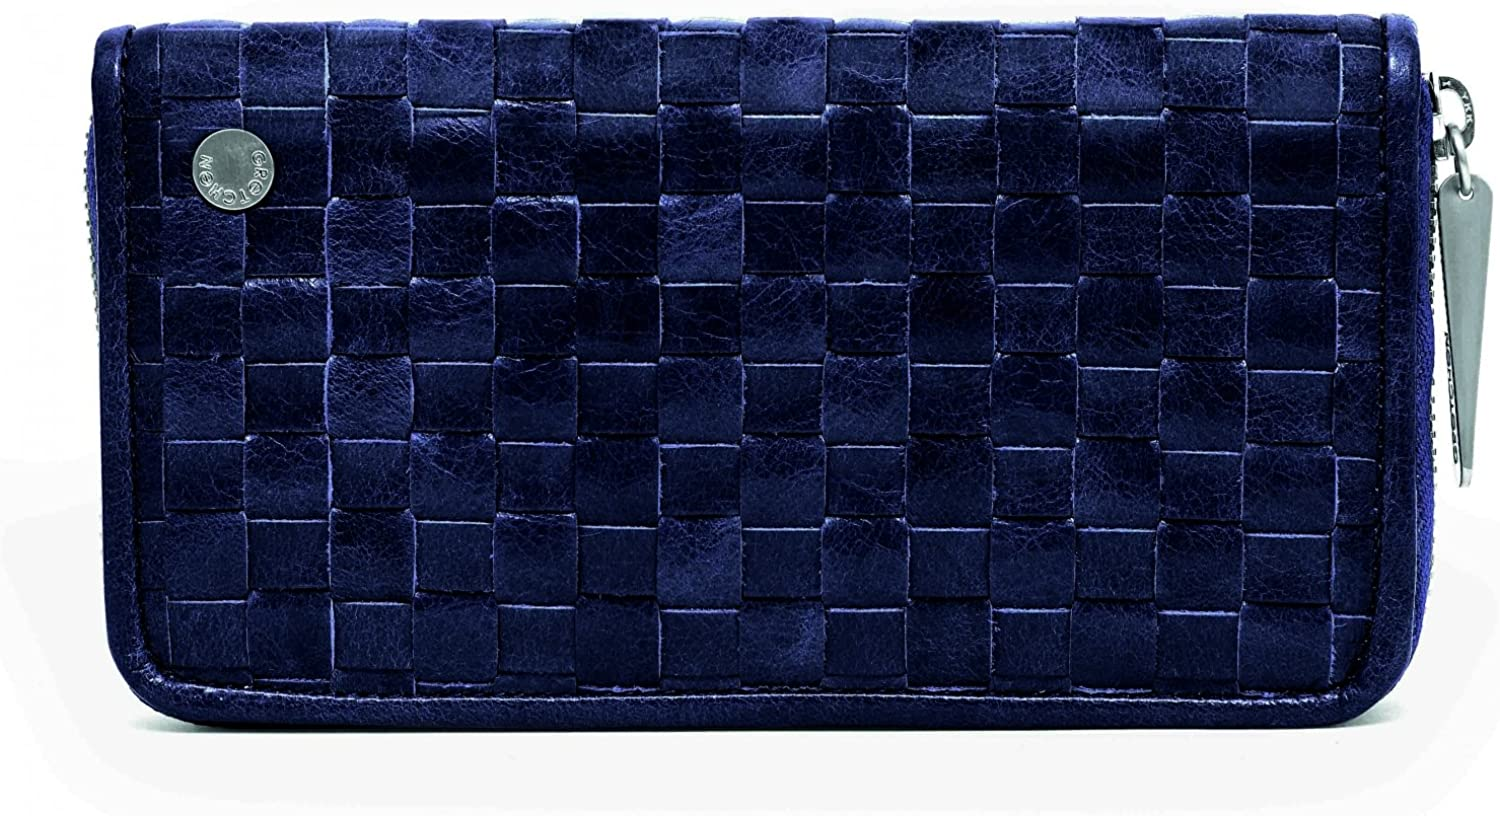 Gretchen - Woven Purse - Night Blau B079Y83Z8P